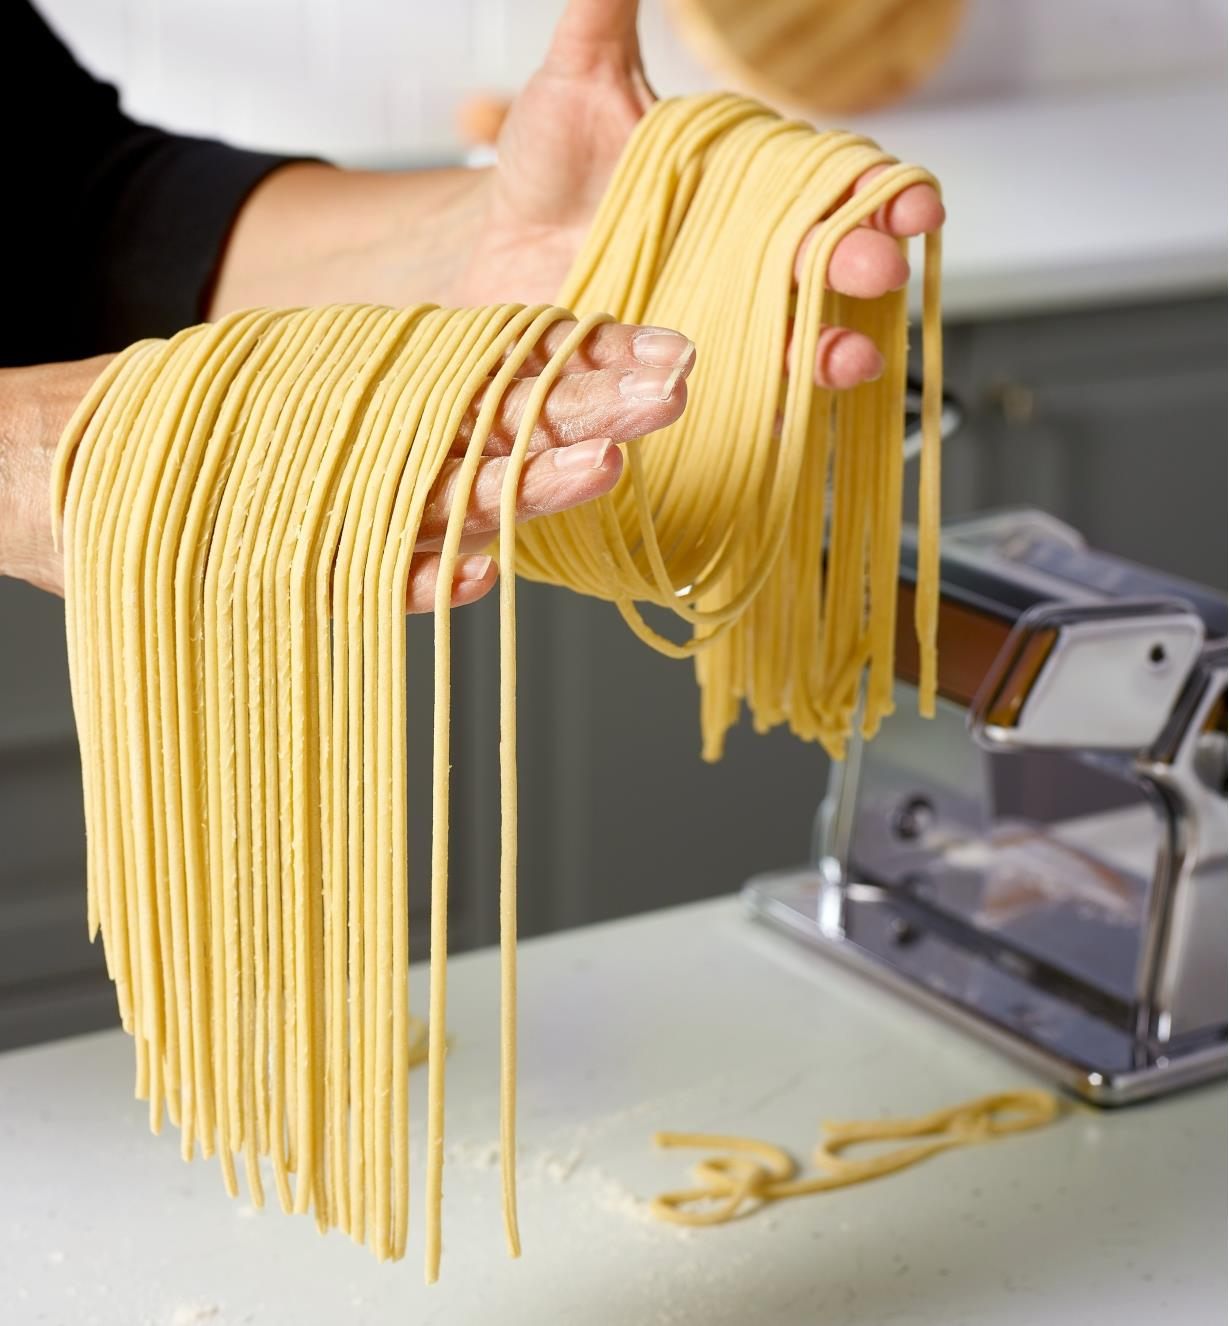 A cook gathers bigoli noodles made using a Marcato pasta machine with the bigoli cutter attachment